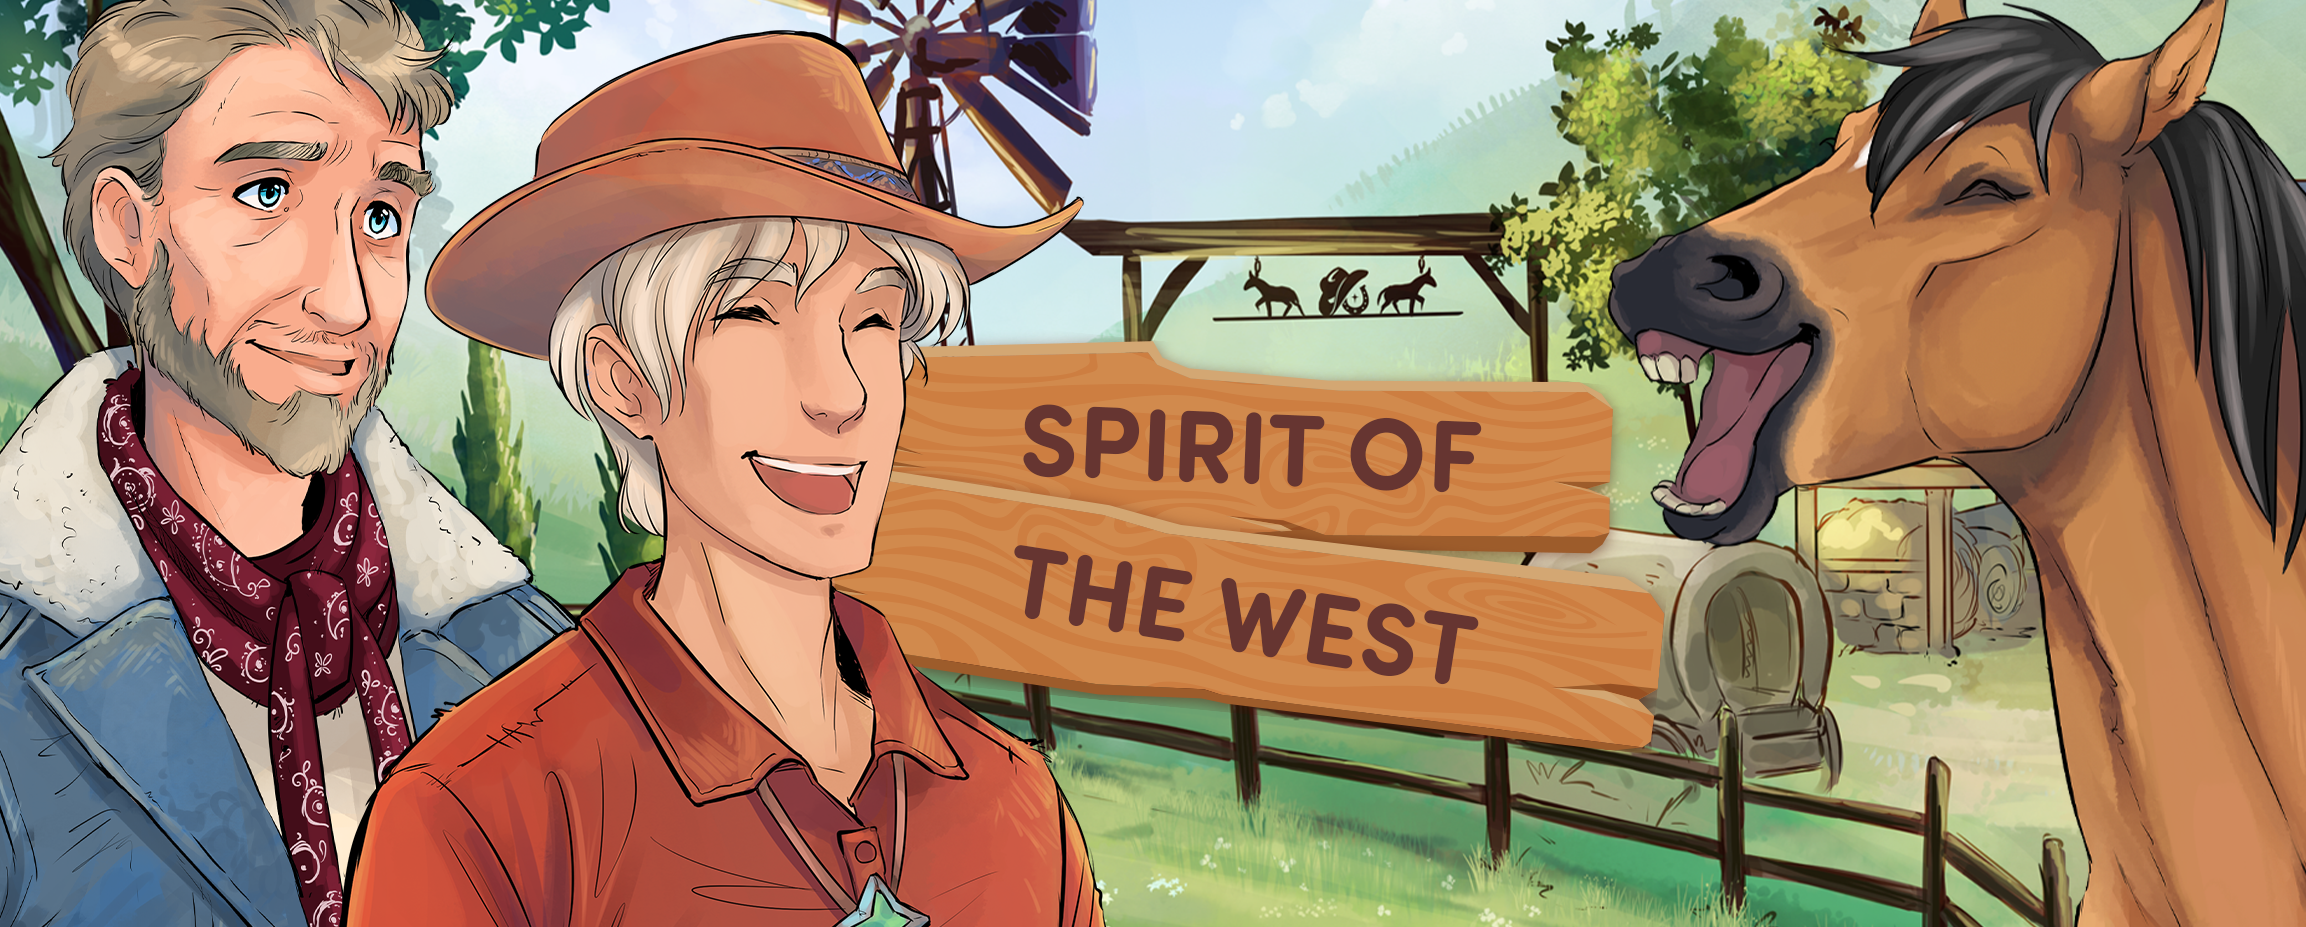 Spirit of the West - Comics Episode One